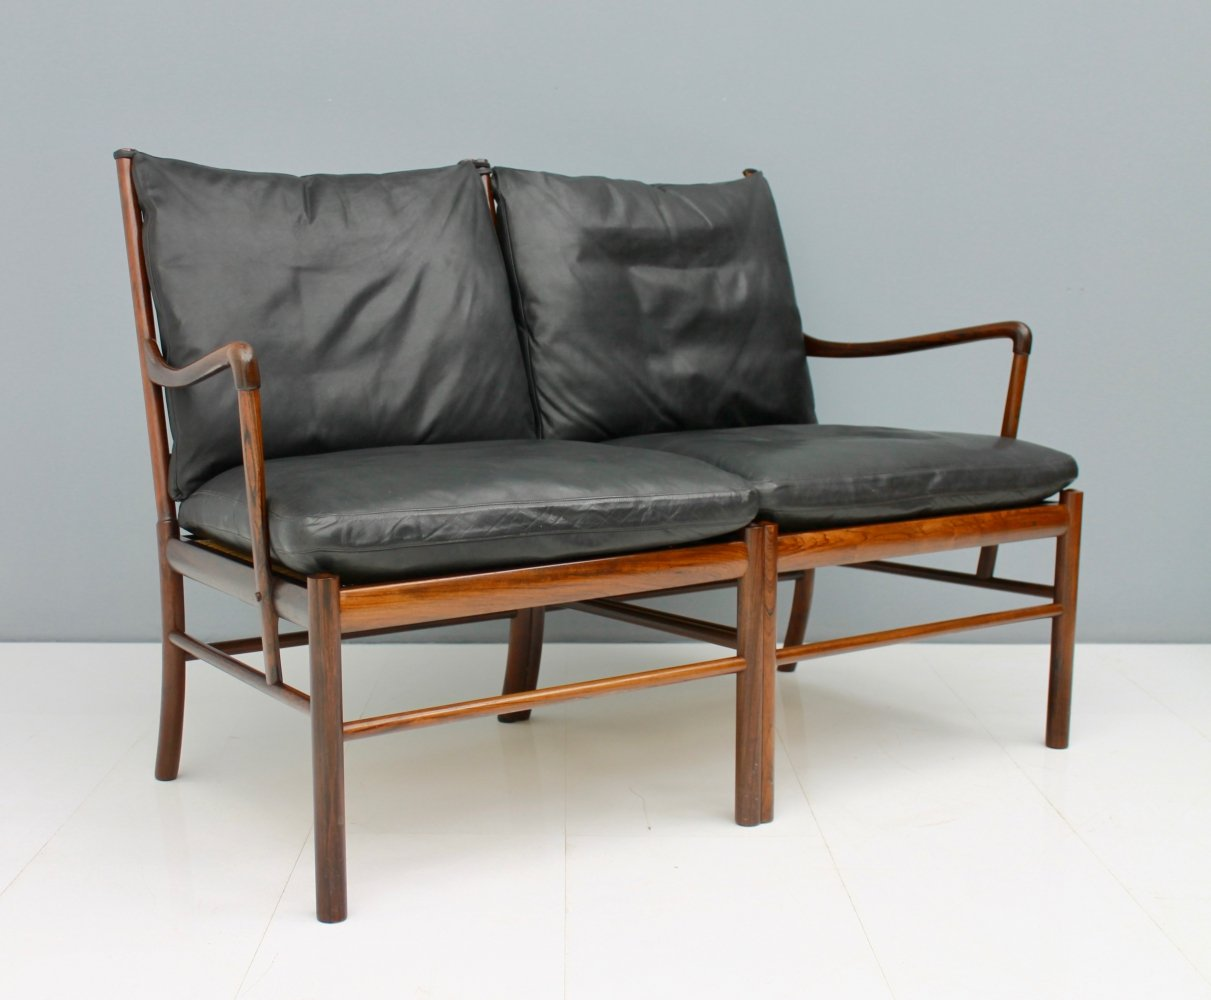 Ole Wanscher P149 colonial settee by Poul Jeppesen